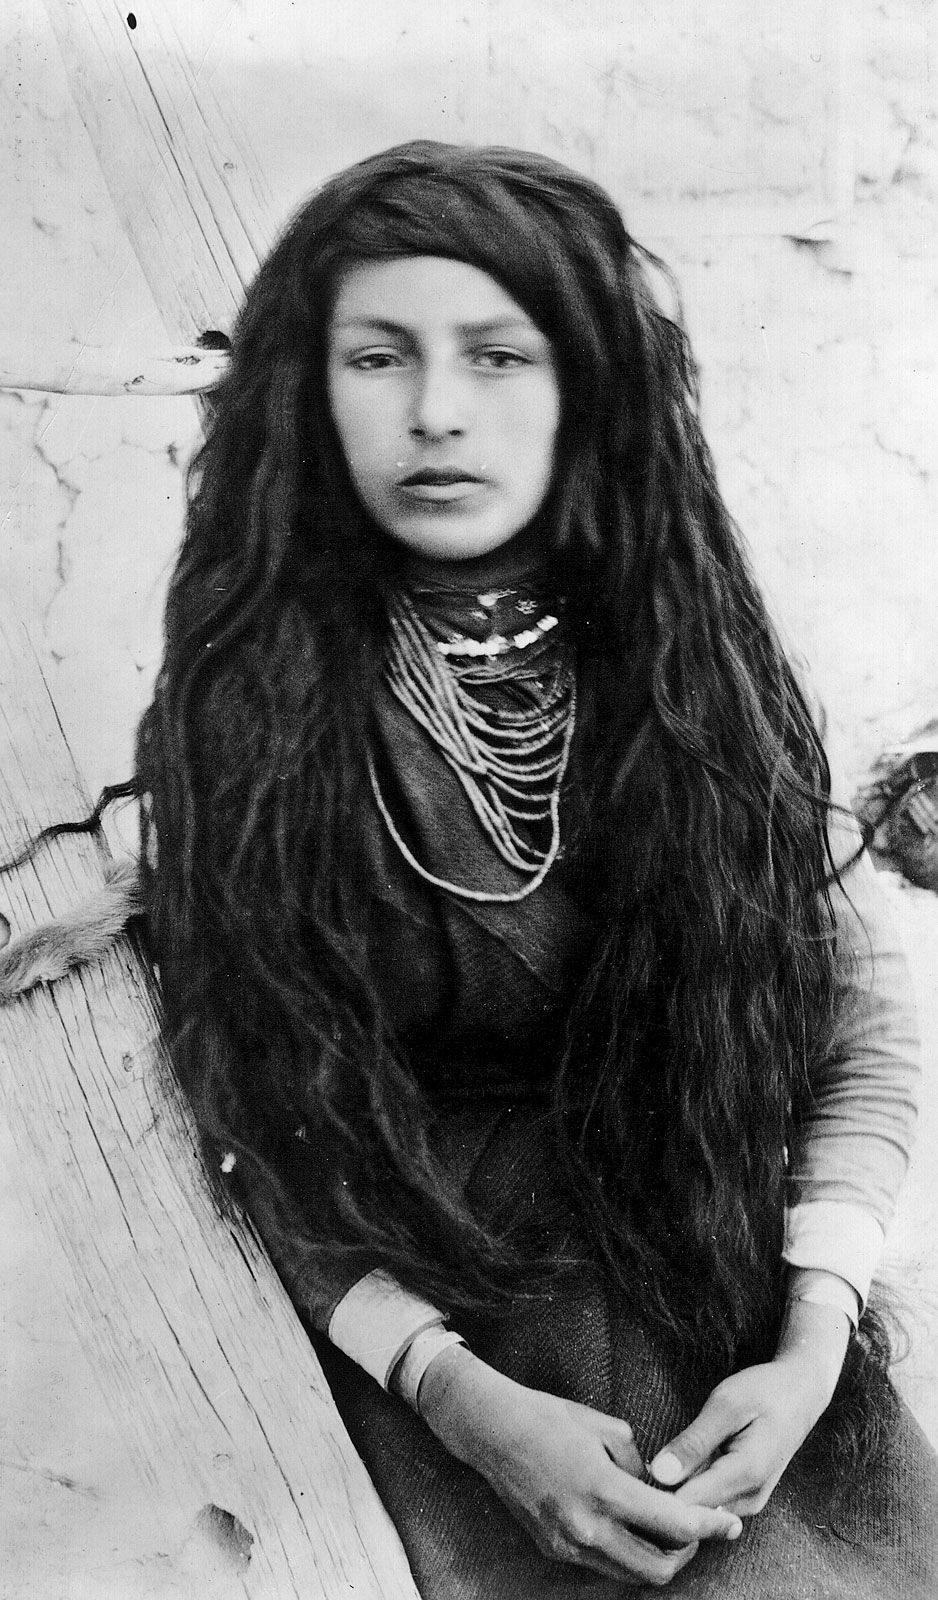 The 20 Best Ideas for Native American Women Hairstyles ...